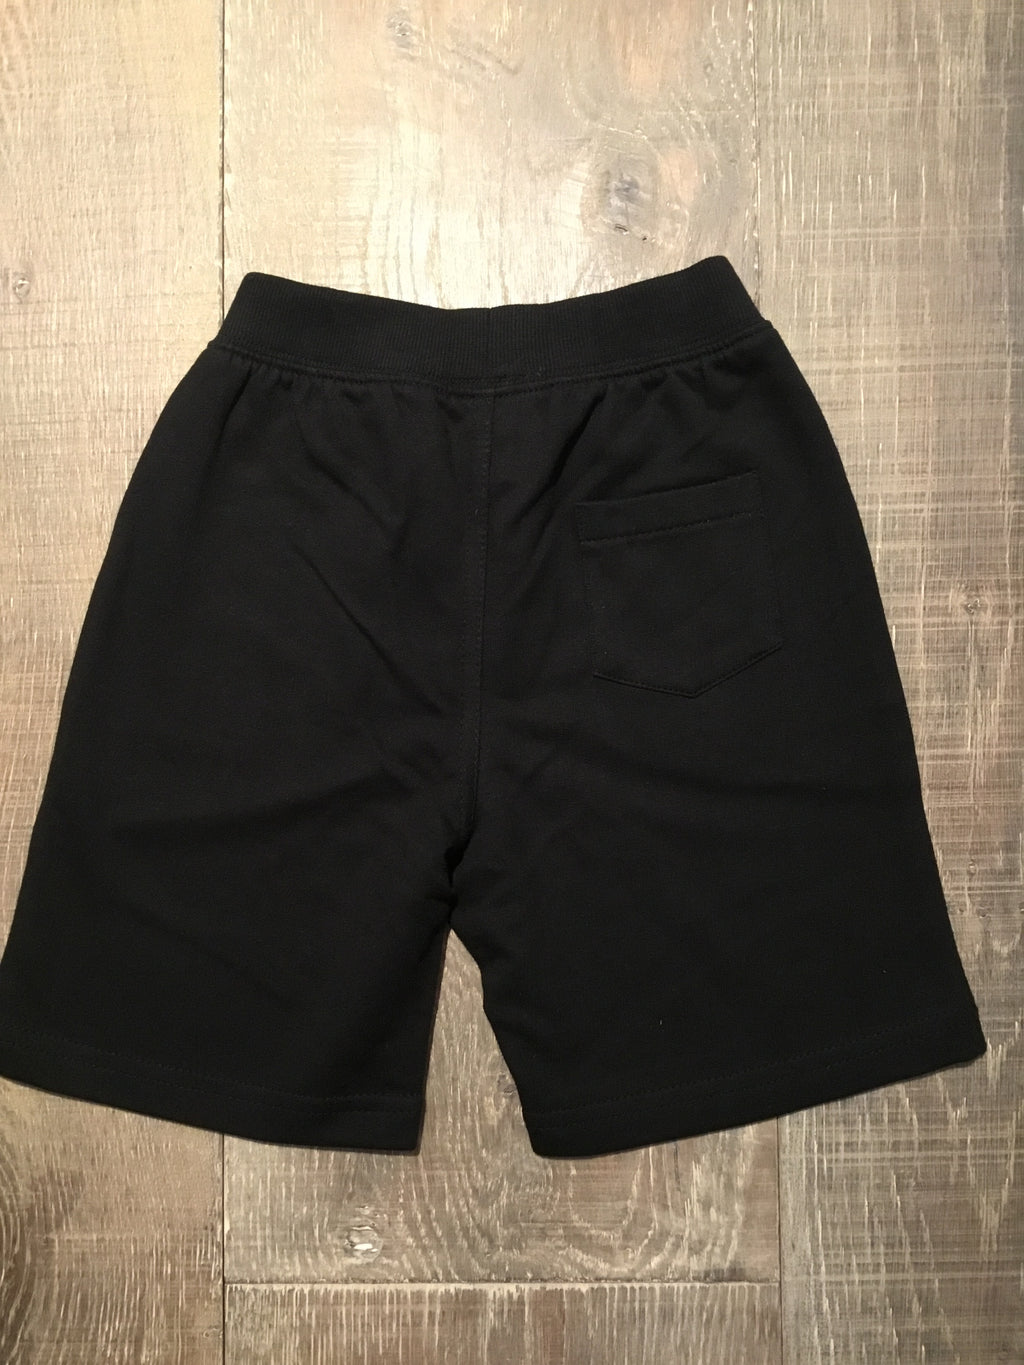 Black Knit Drawstring Pocket Shorts